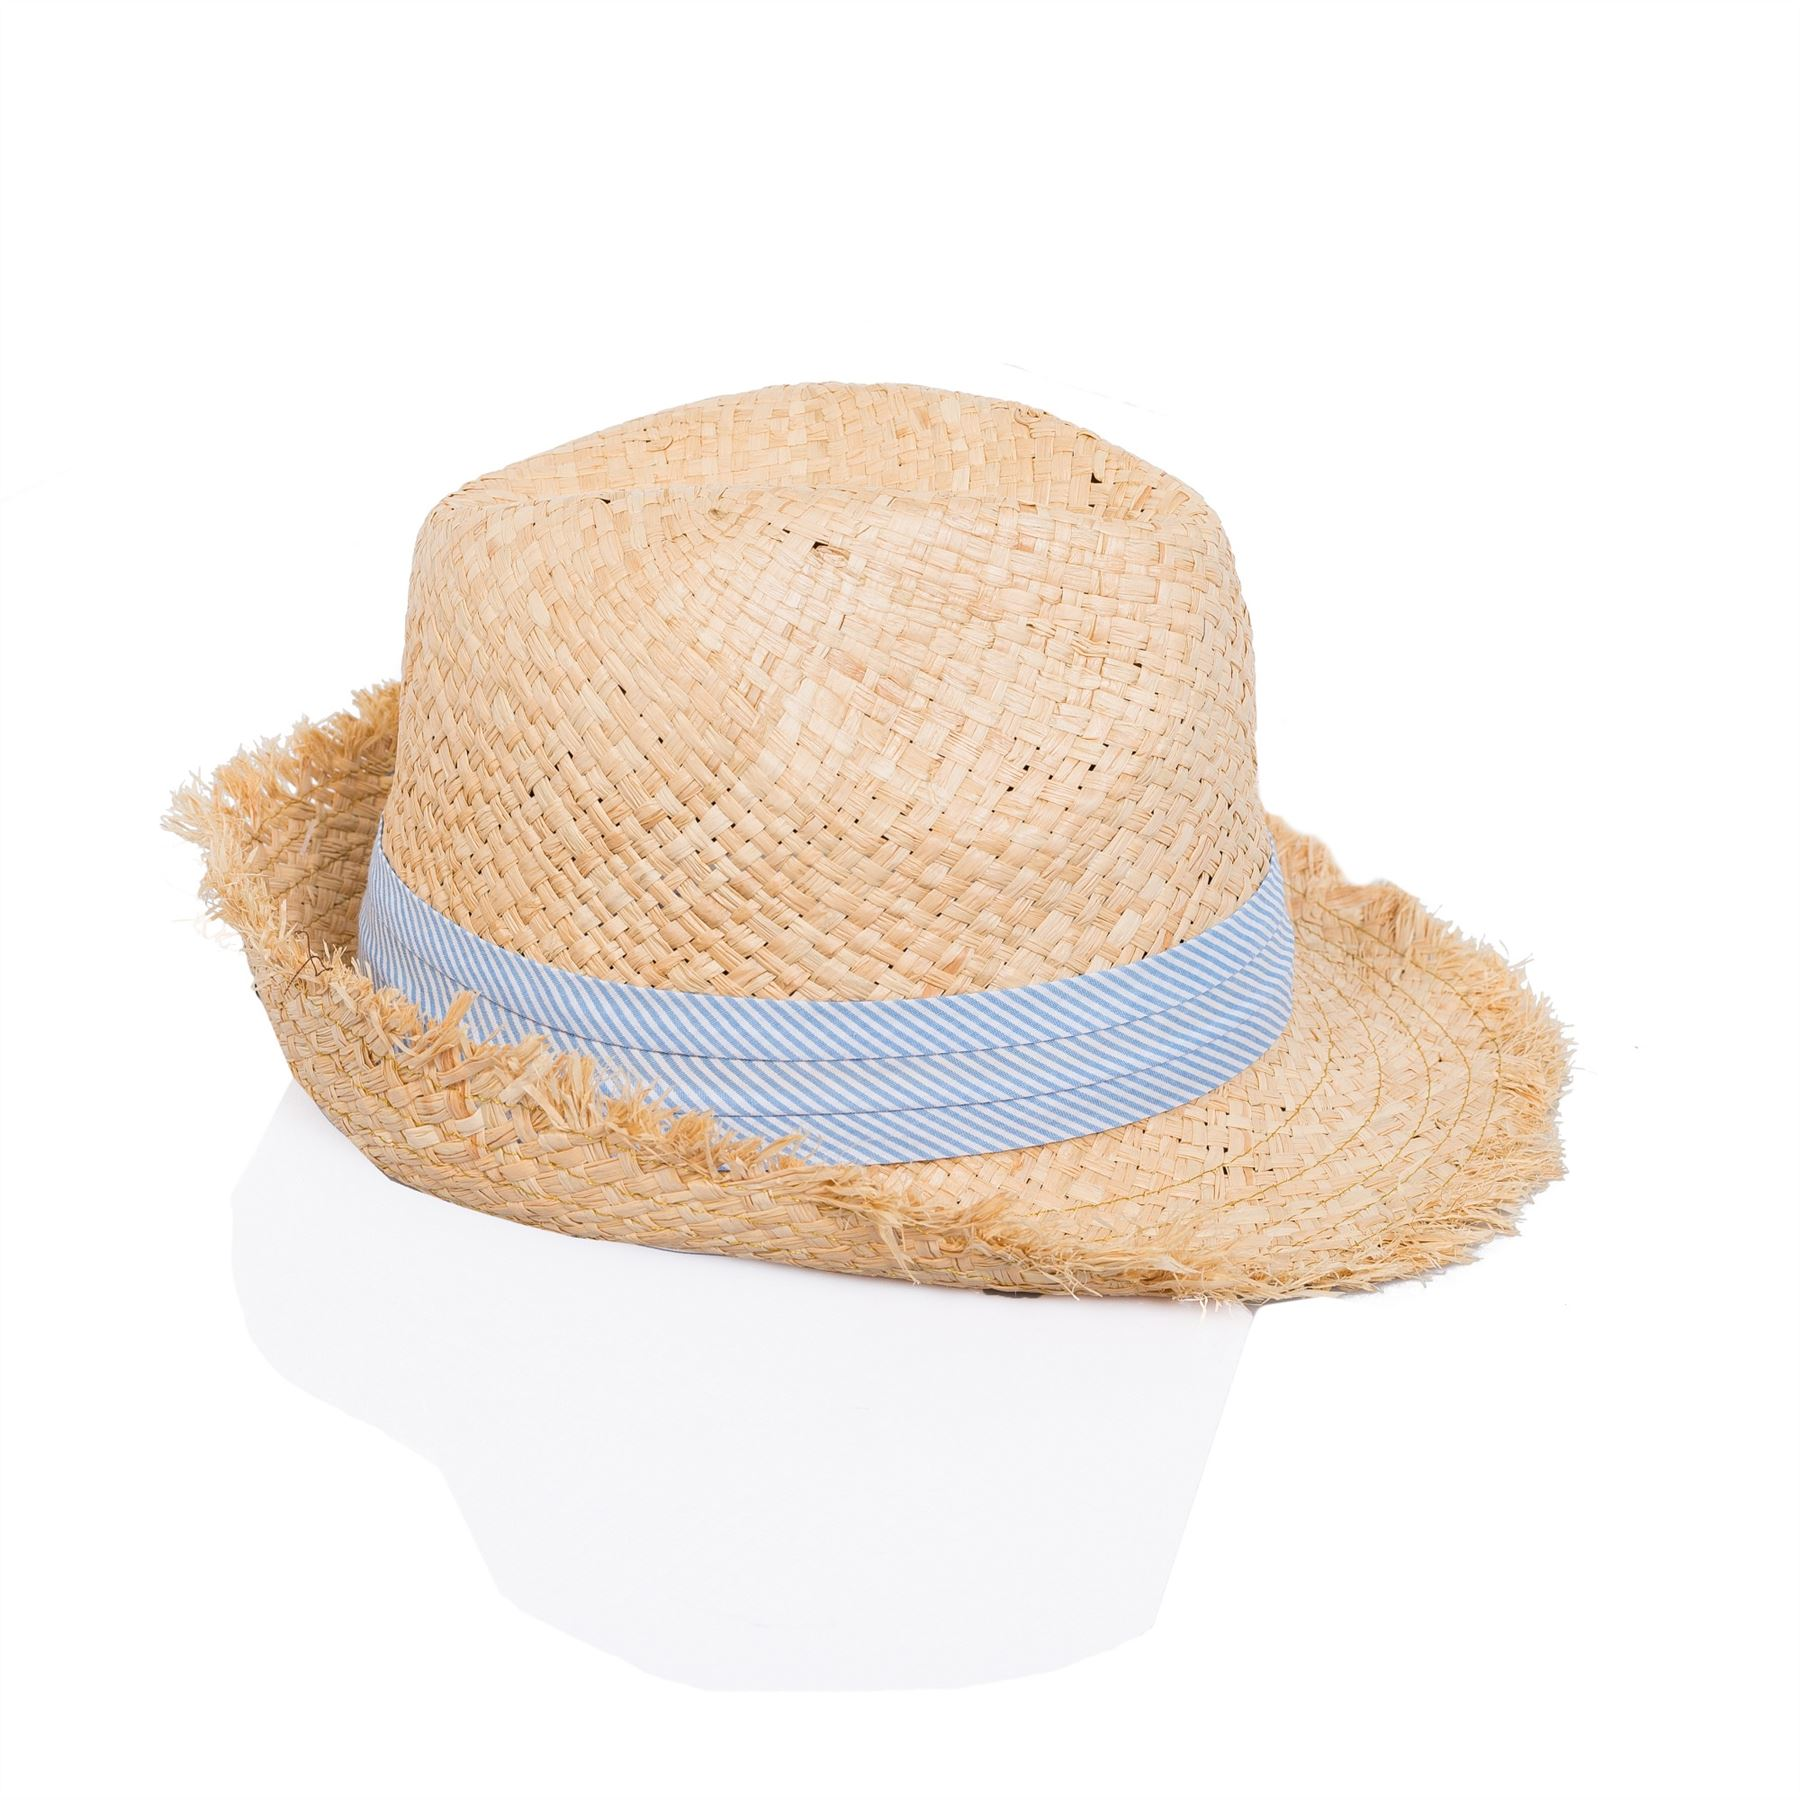 Women's hats featuring gorgeous pom poms and trilby styles are a must-have, while beanies make for cosy and stylish attire. With smart caps and straw hats in a striking colour palette, it's easy to enhance your beach chic in time for your next holiday.